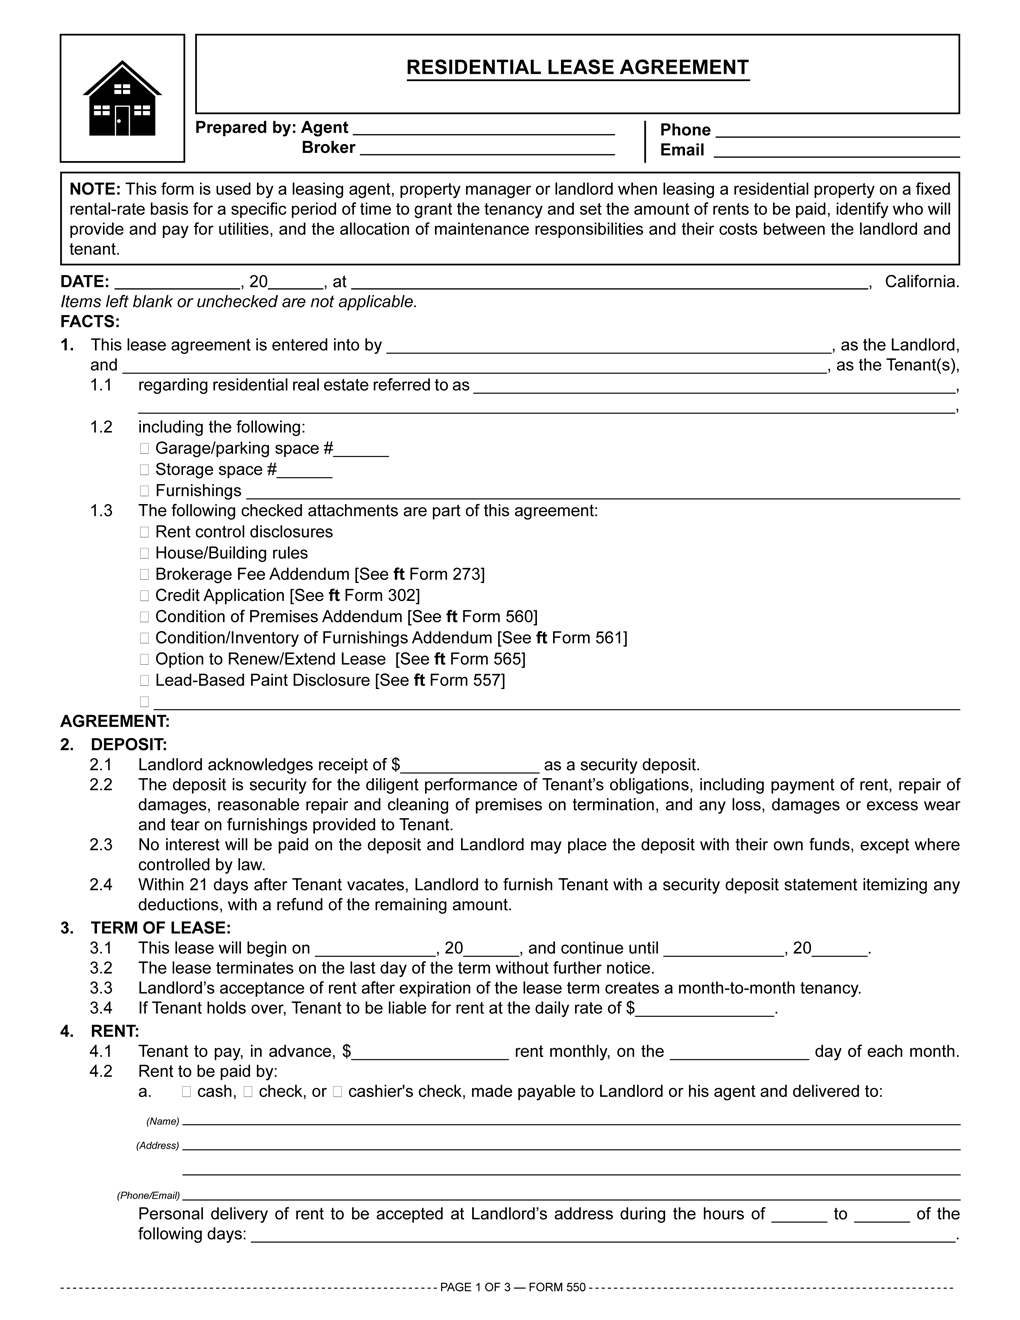 periodic and fixed term tenancies distinguished - Tenant Lease Form